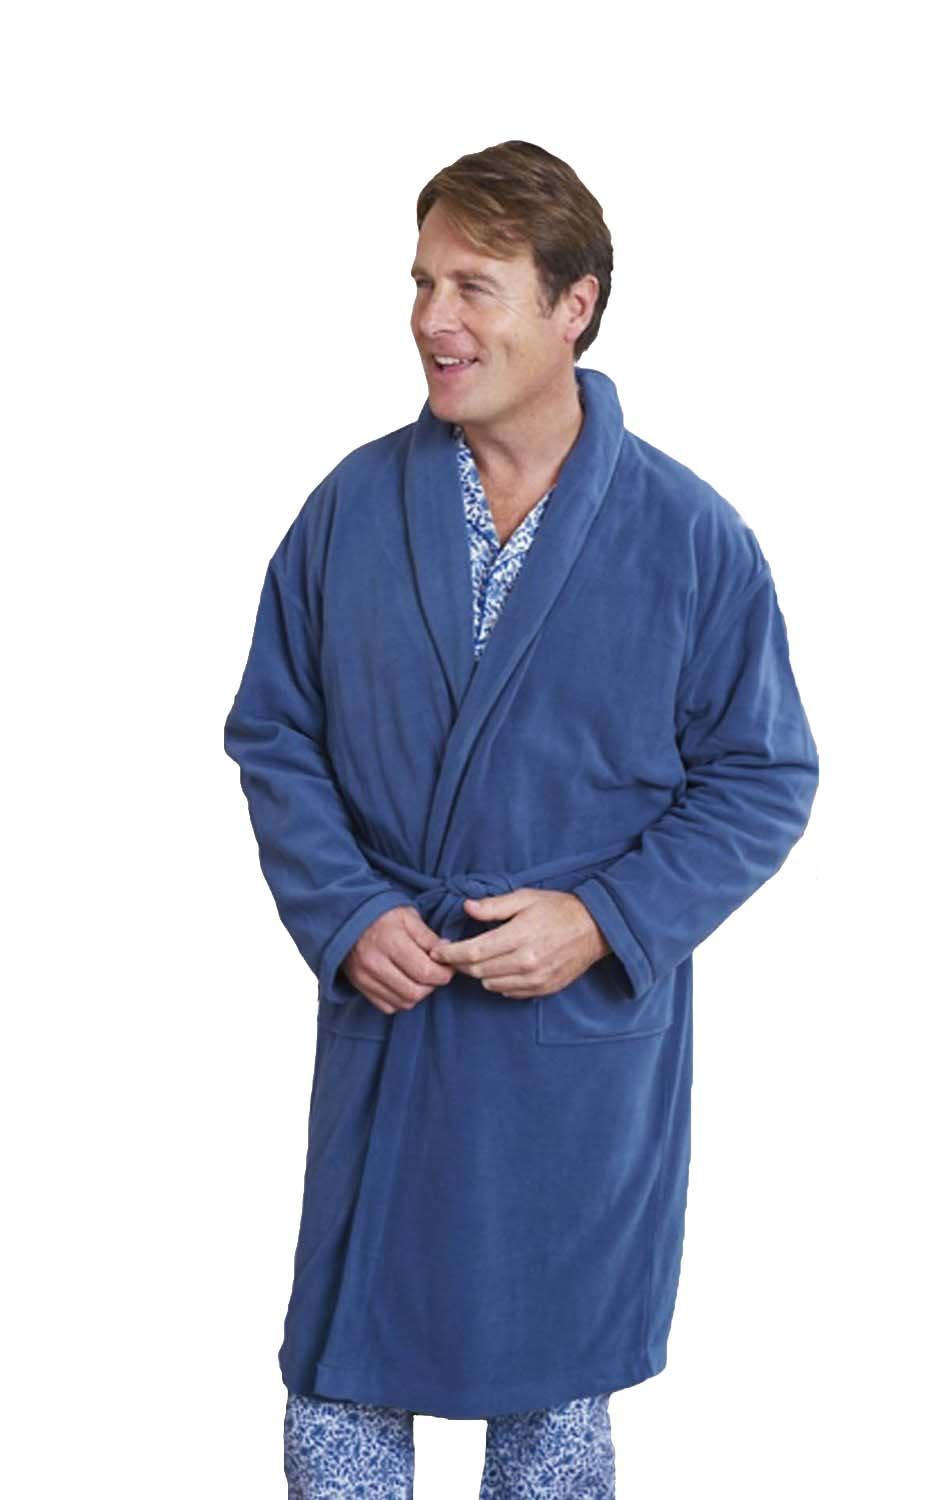 mainflyyou.tk: men robes on sale. U2SKIIN Mens Fleece Robe Plush Collar Shawl Bathrobe. by U2SKIIN. $ - $ $ 17 $ 21 99 Prime. FREE Shipping on eligible orders. Some sizes/colors are Prime eligible. out of 5 stars #followme Printed Plaid Velour Flannel Robe Robes for Men.